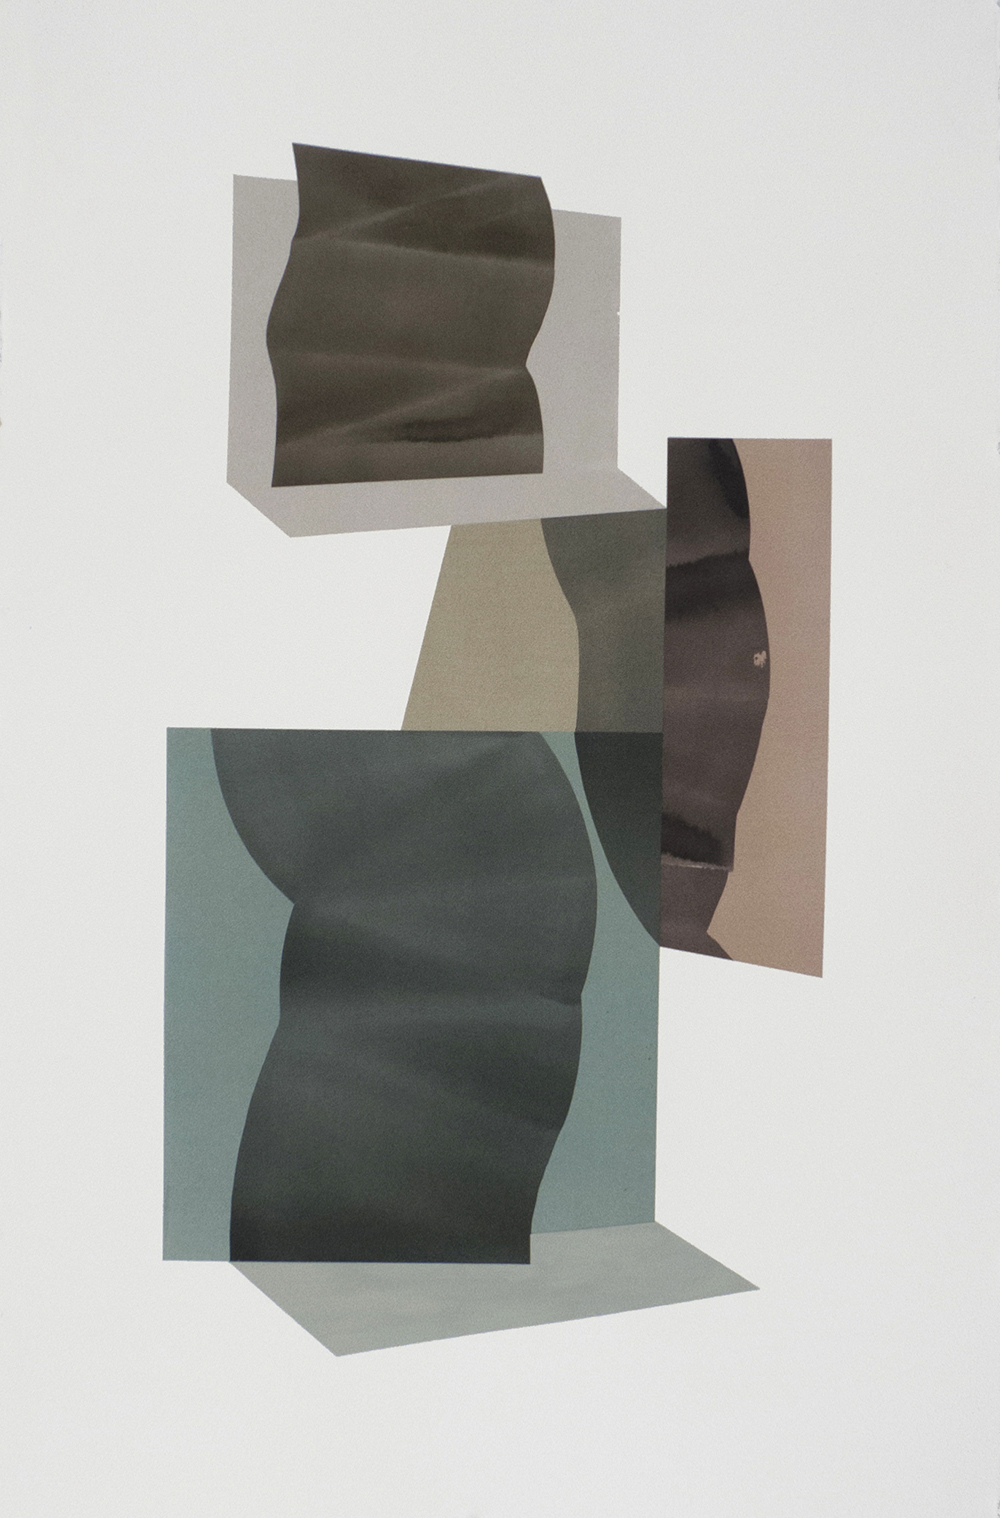 "Simone Rochon,  Ombres souples no. 1 , 2017, collage, acrylic ink on Waterford paper, 40"" x 26"" (102 x 66 cm)."